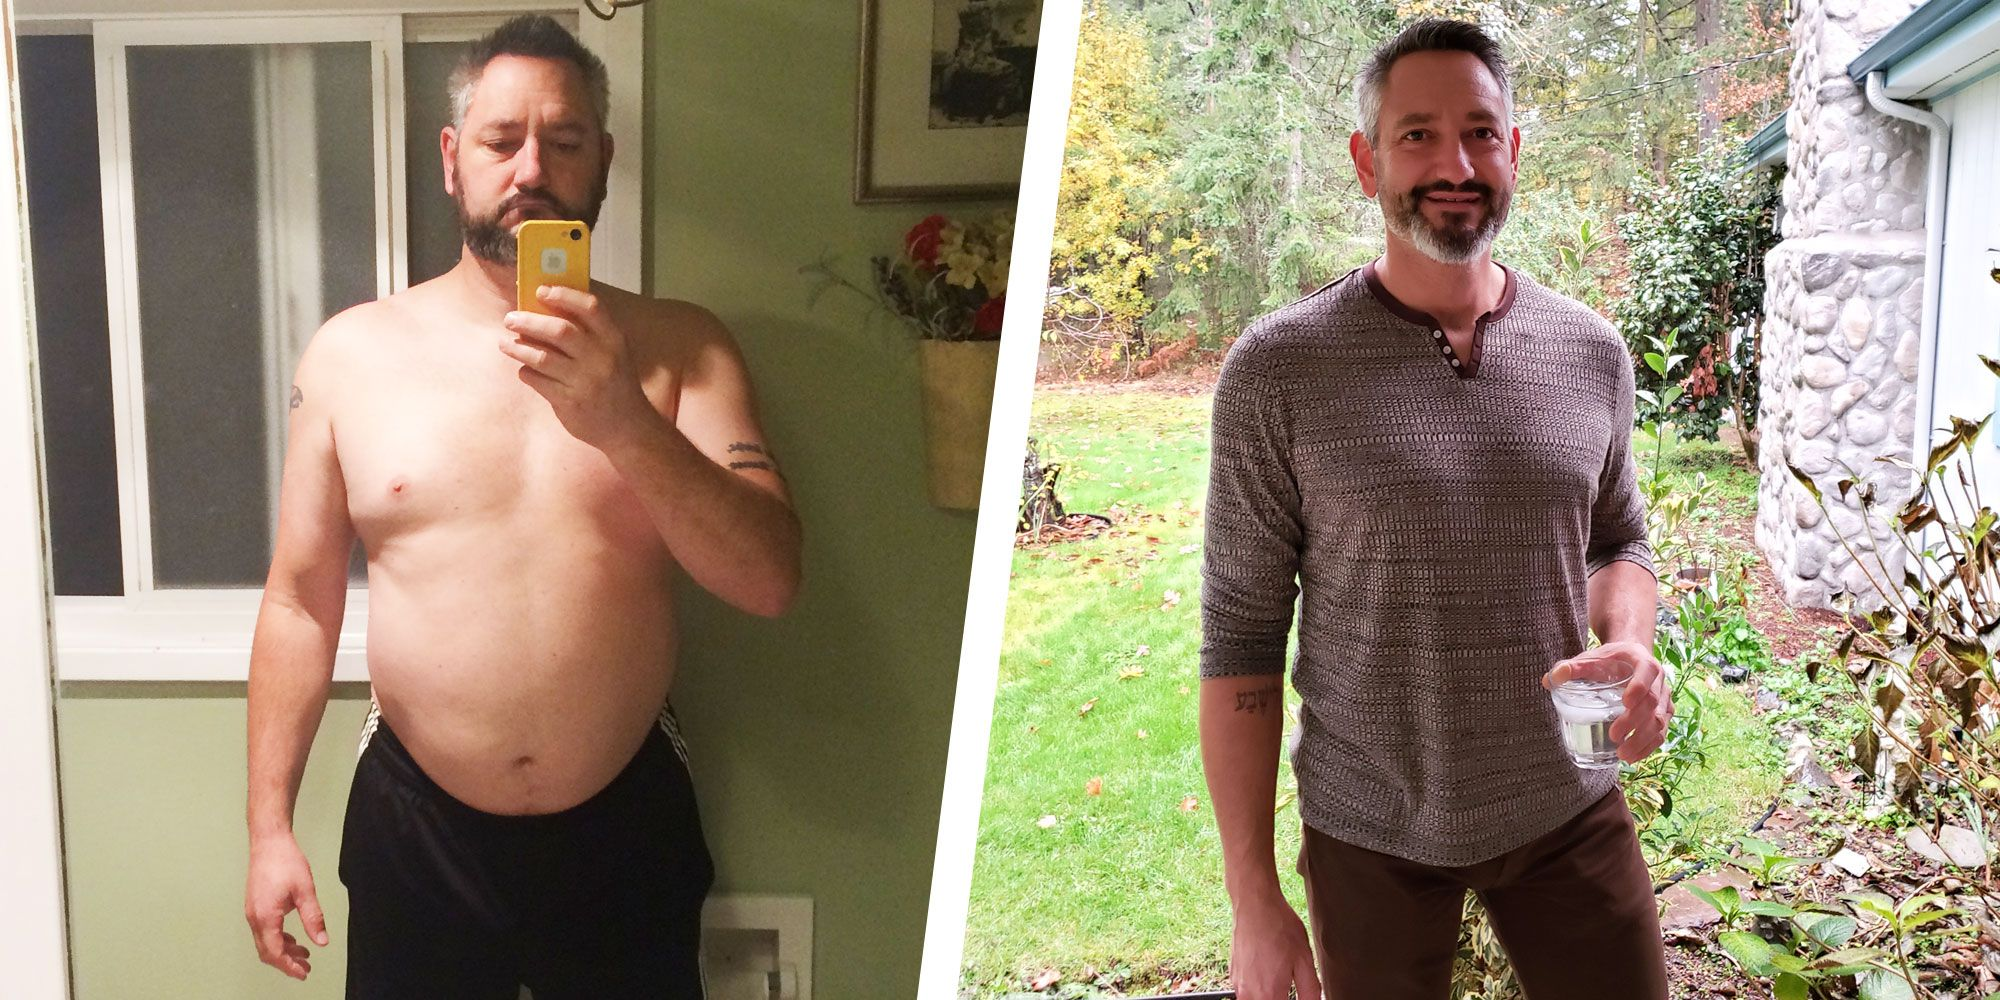 This Guy Got Sober, Had a 40-Pound Weight Loss Transformation, and Changed His Life